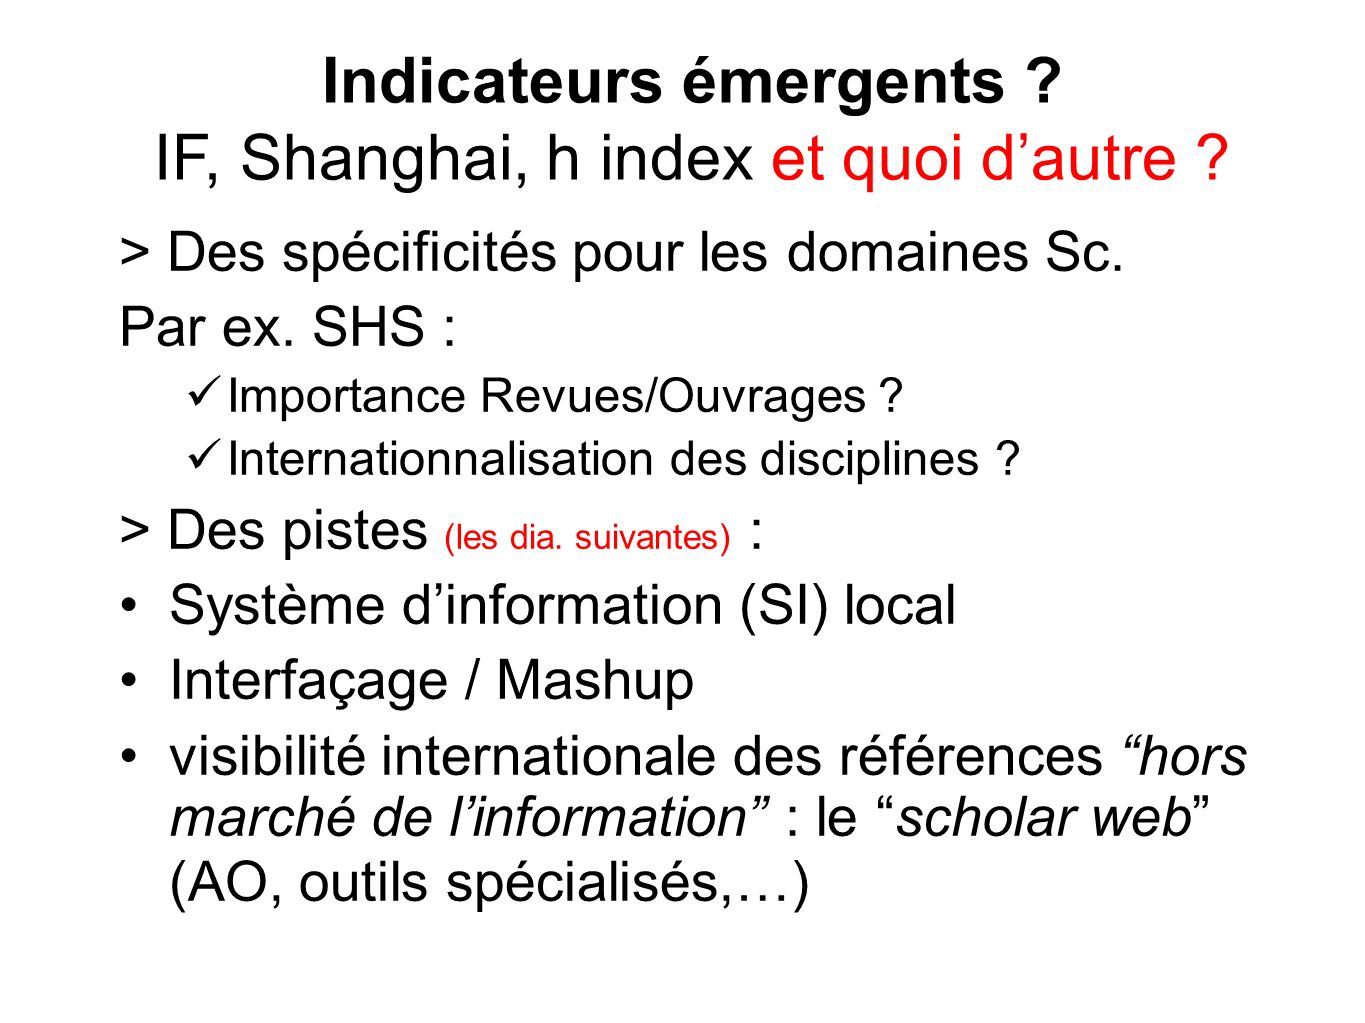 Indicateurs émergents IF, Shanghai, h index et quoi d'autre